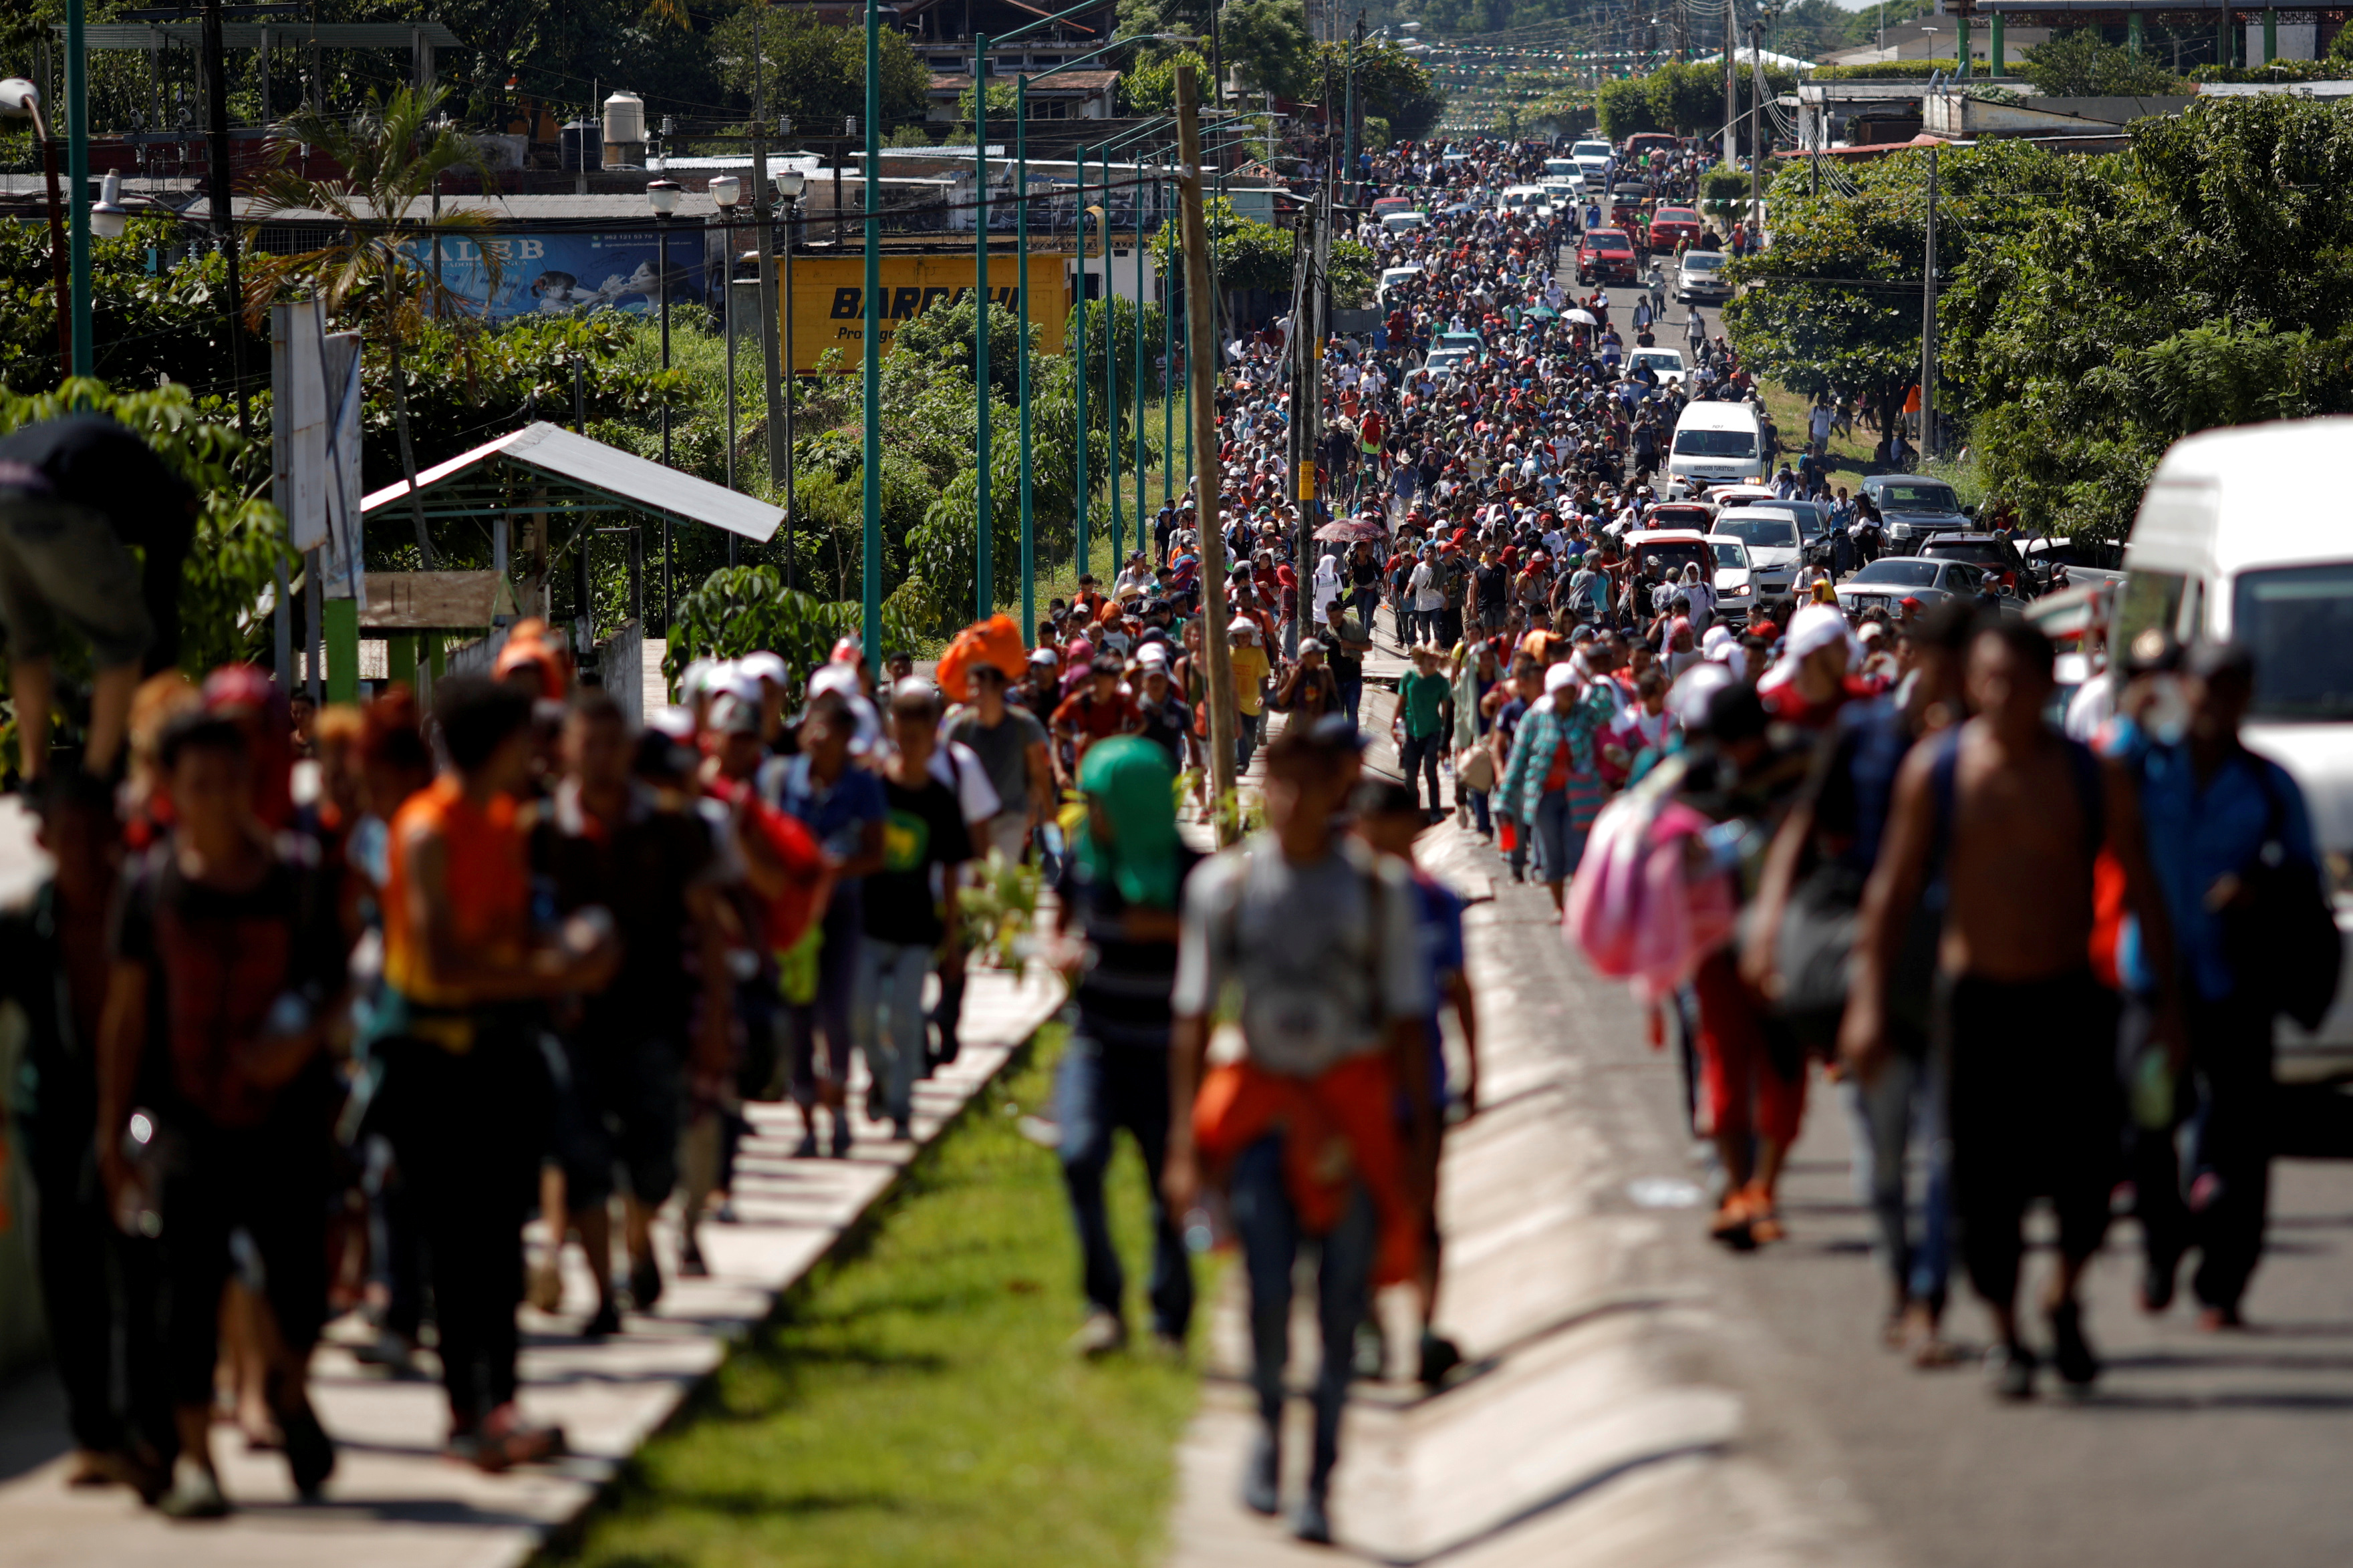 Central American migrants walk along the highway near the border with Guatemala, as they continue their journey trying to reach the U.S., in Tapachula, Mexico, Oct. 21, 2018.